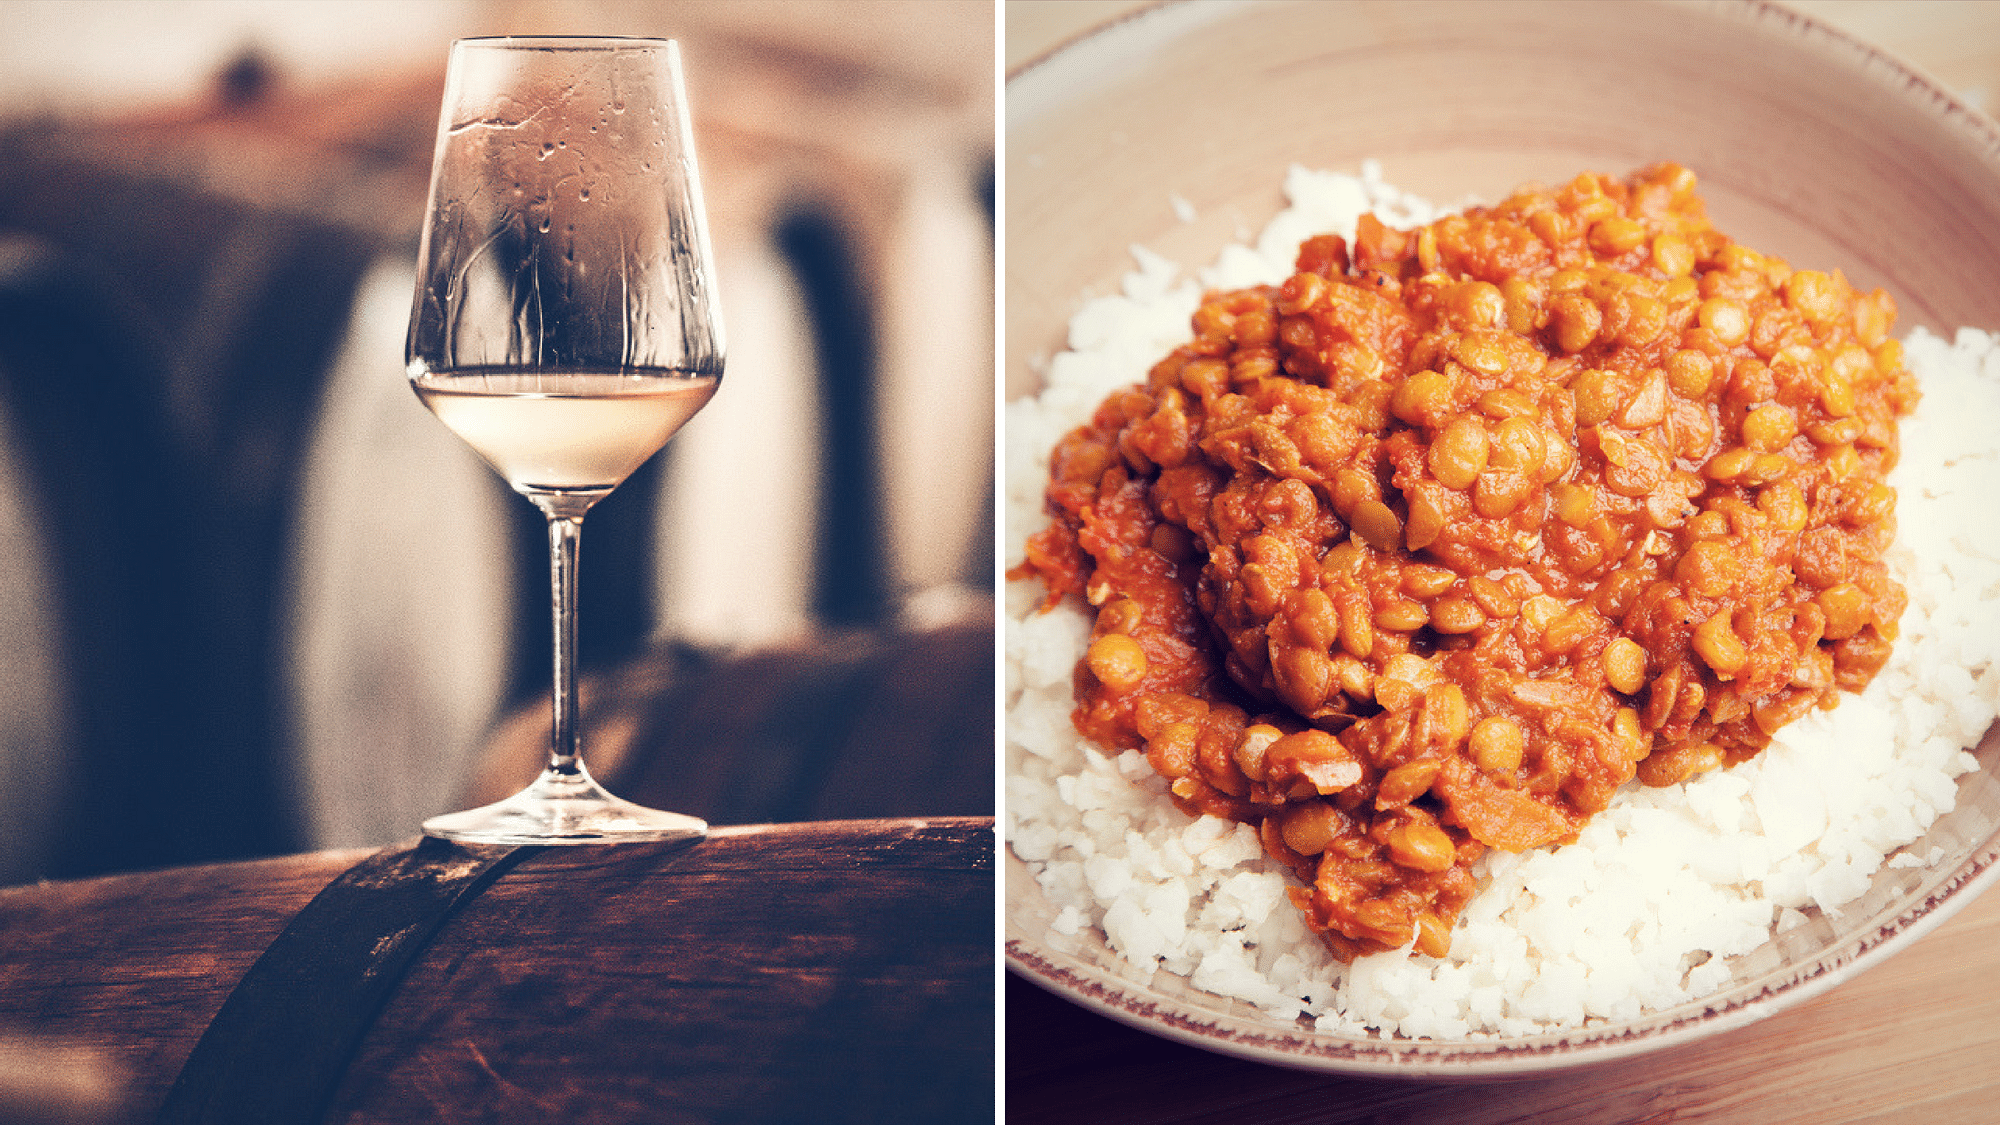 We Indians were never taught to pair wines with our fiery red chicken curries or even dal chawal!